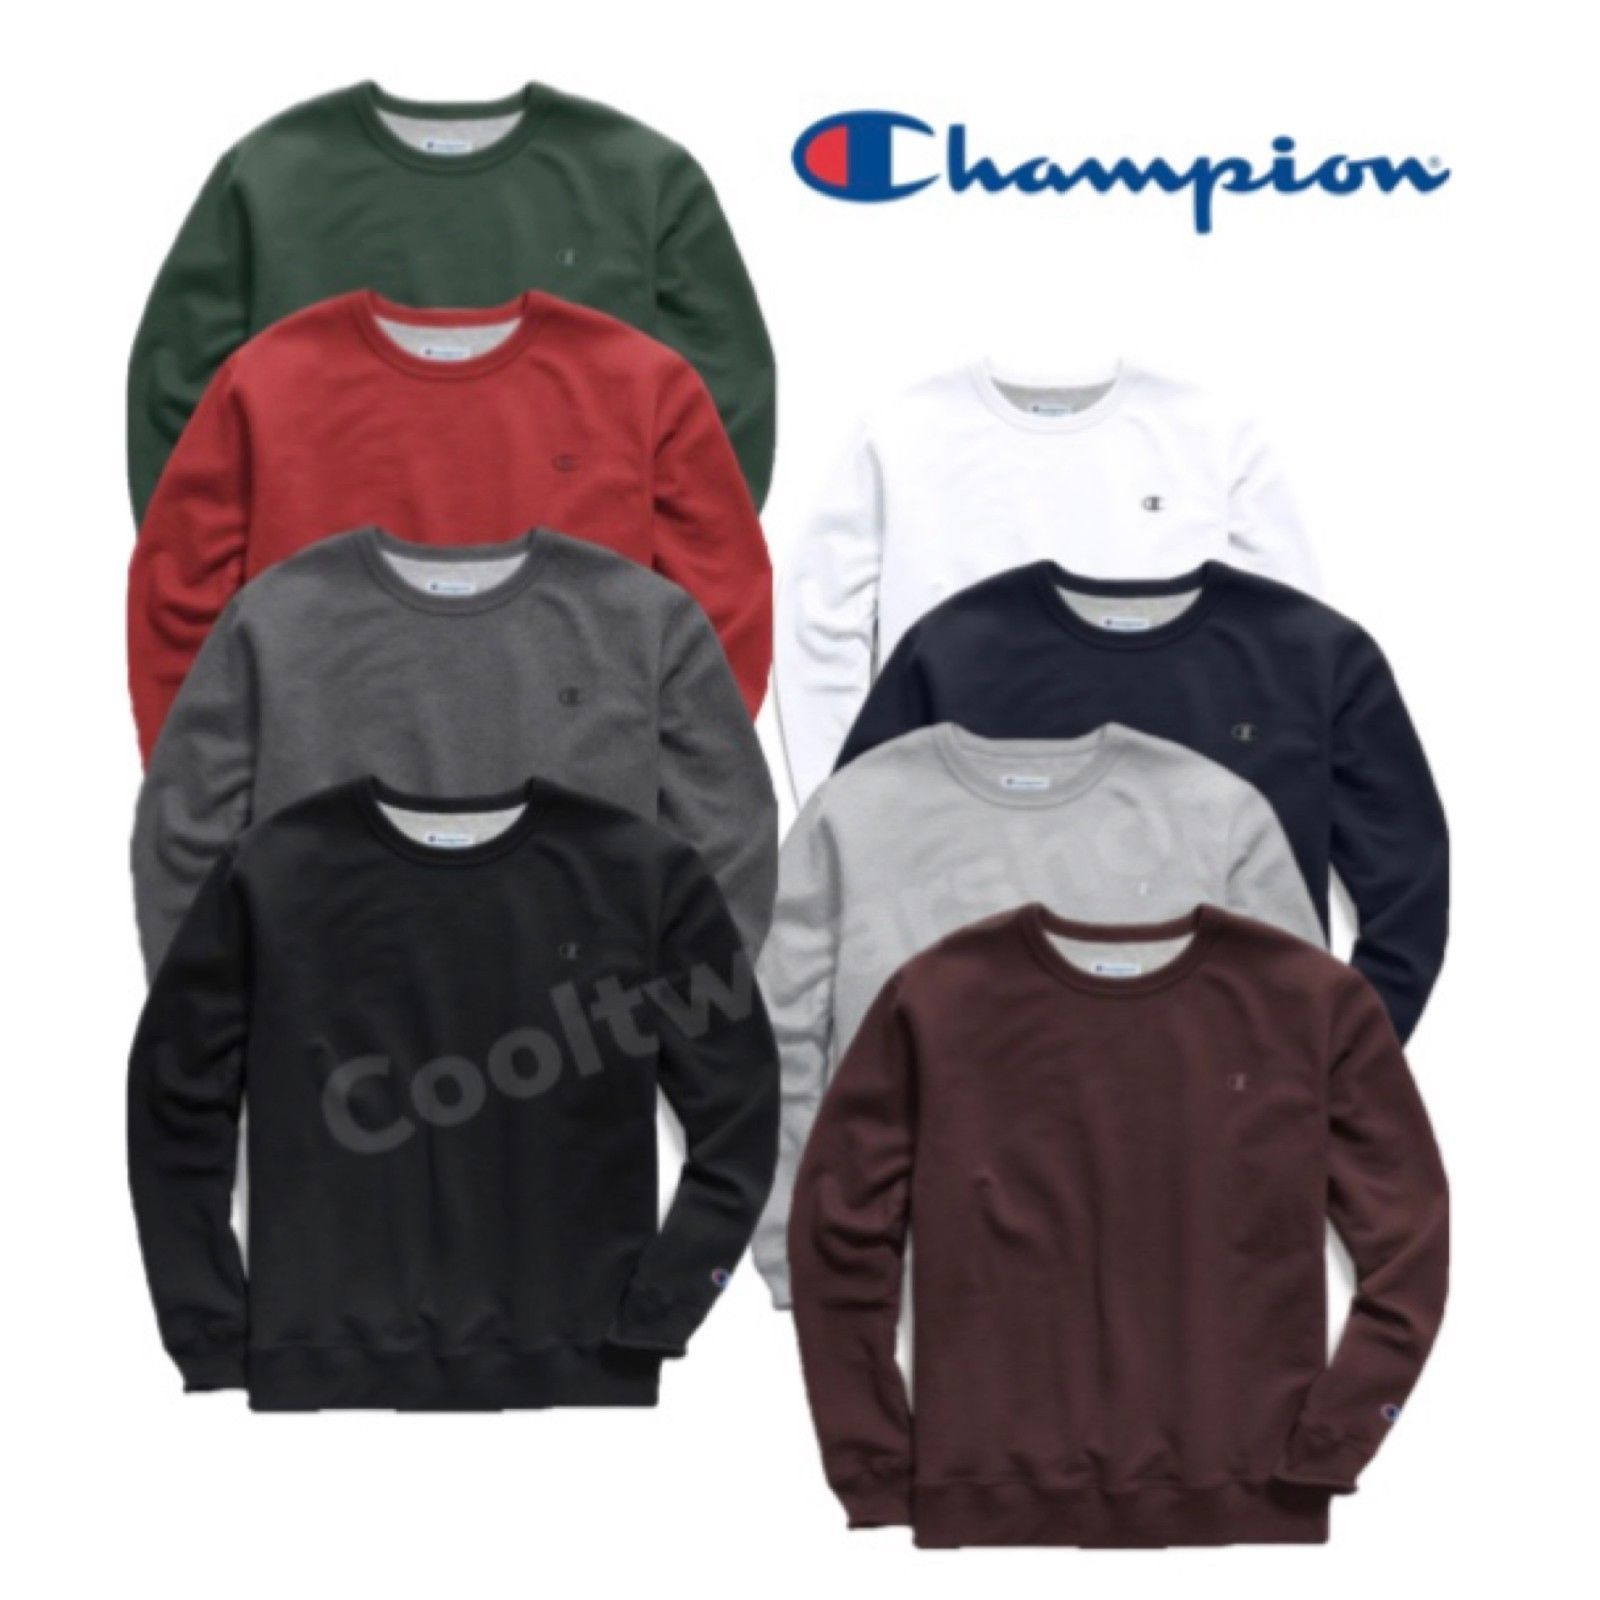 Champion Powerblend Men's Fleece Crew Long Sleeves Sweatshirt S0888 407D55